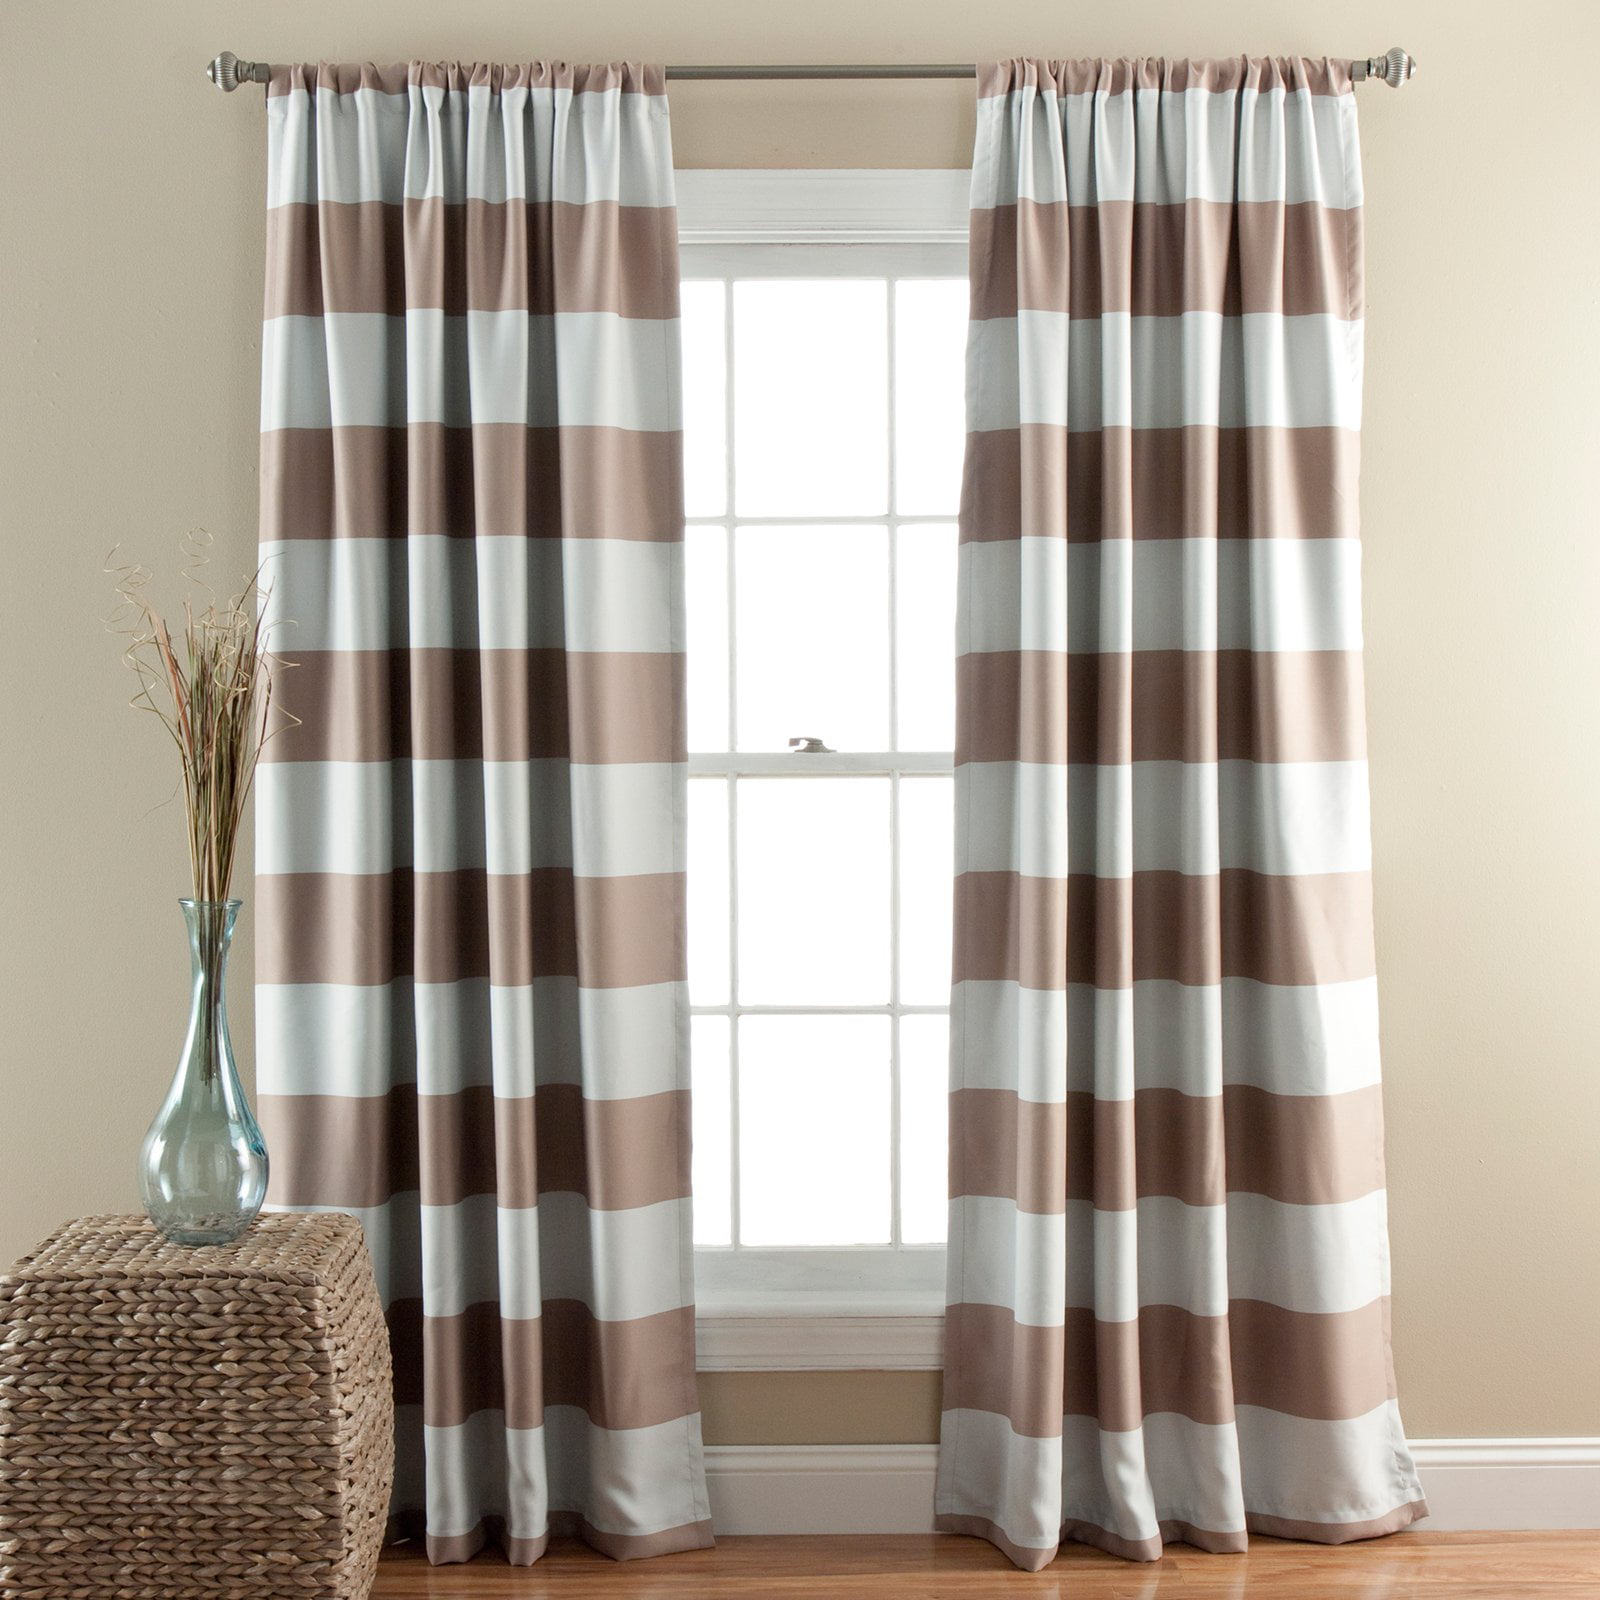 rod and kids white room navy amazon greyish curtains com jrcol for pocket blue nautical striped blackout dp x deconovo